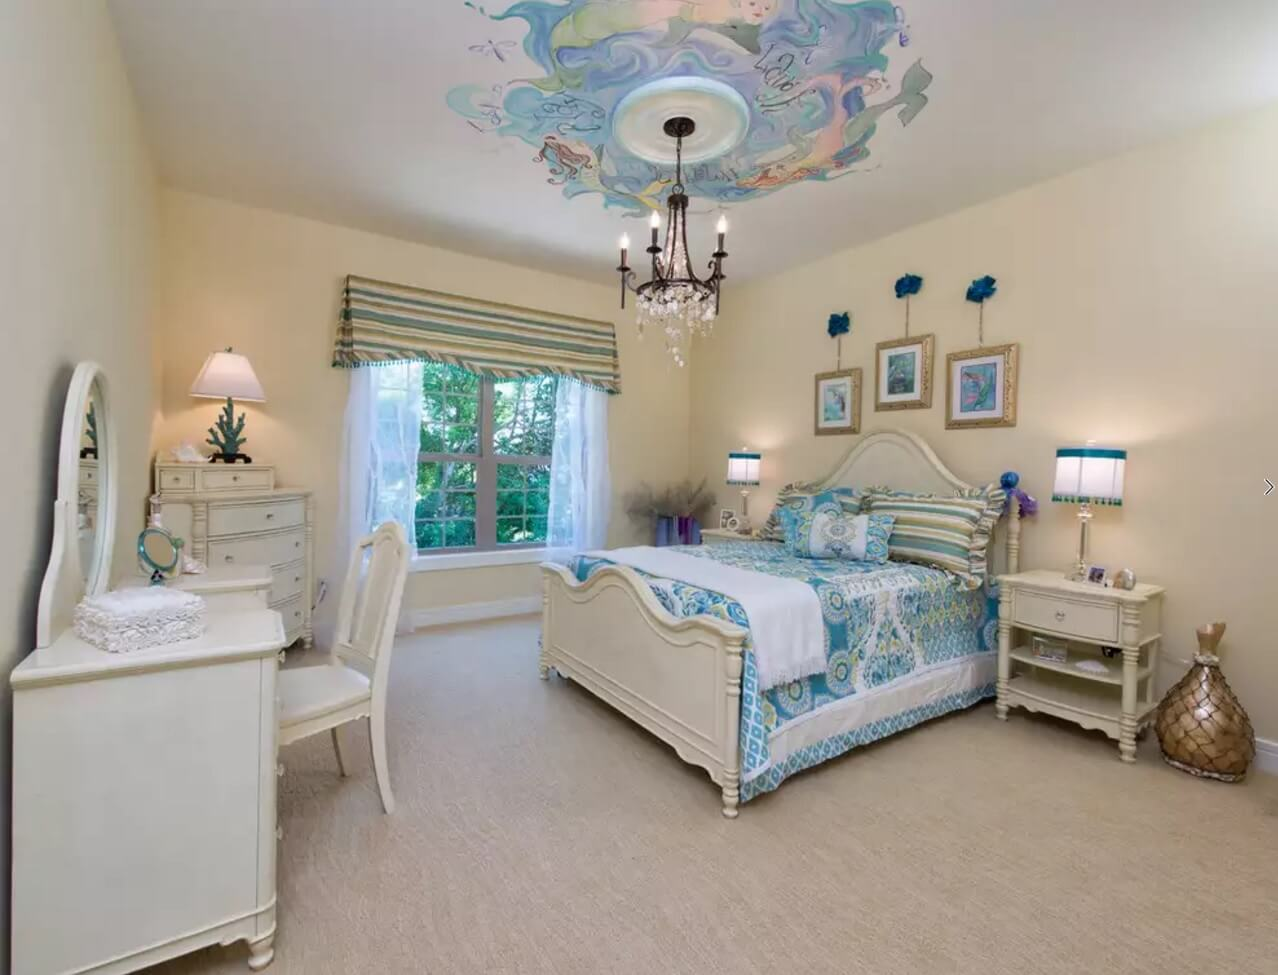 Ceiling Paint Interior Finishing Design Ideas as Nice Budget Option. White layer and the bluish painting round the chandelier